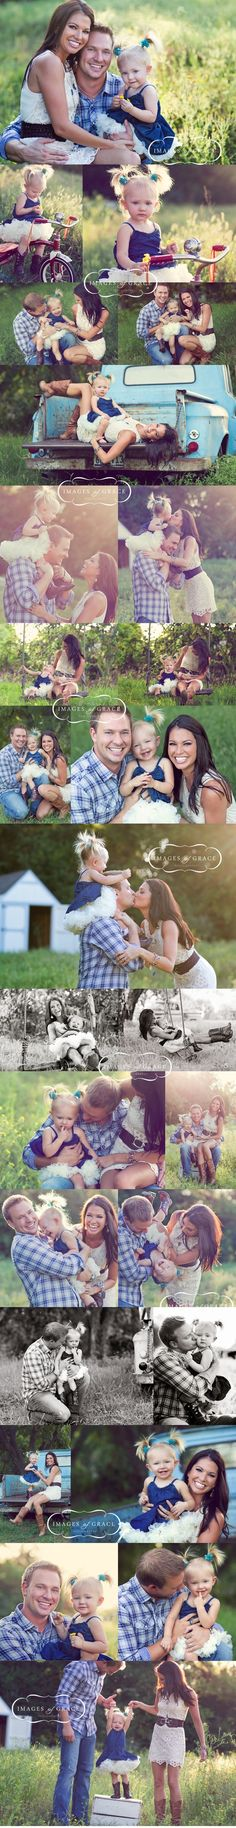 Omg I cant wait to do a family session like this next summer. Gorgeous photos.